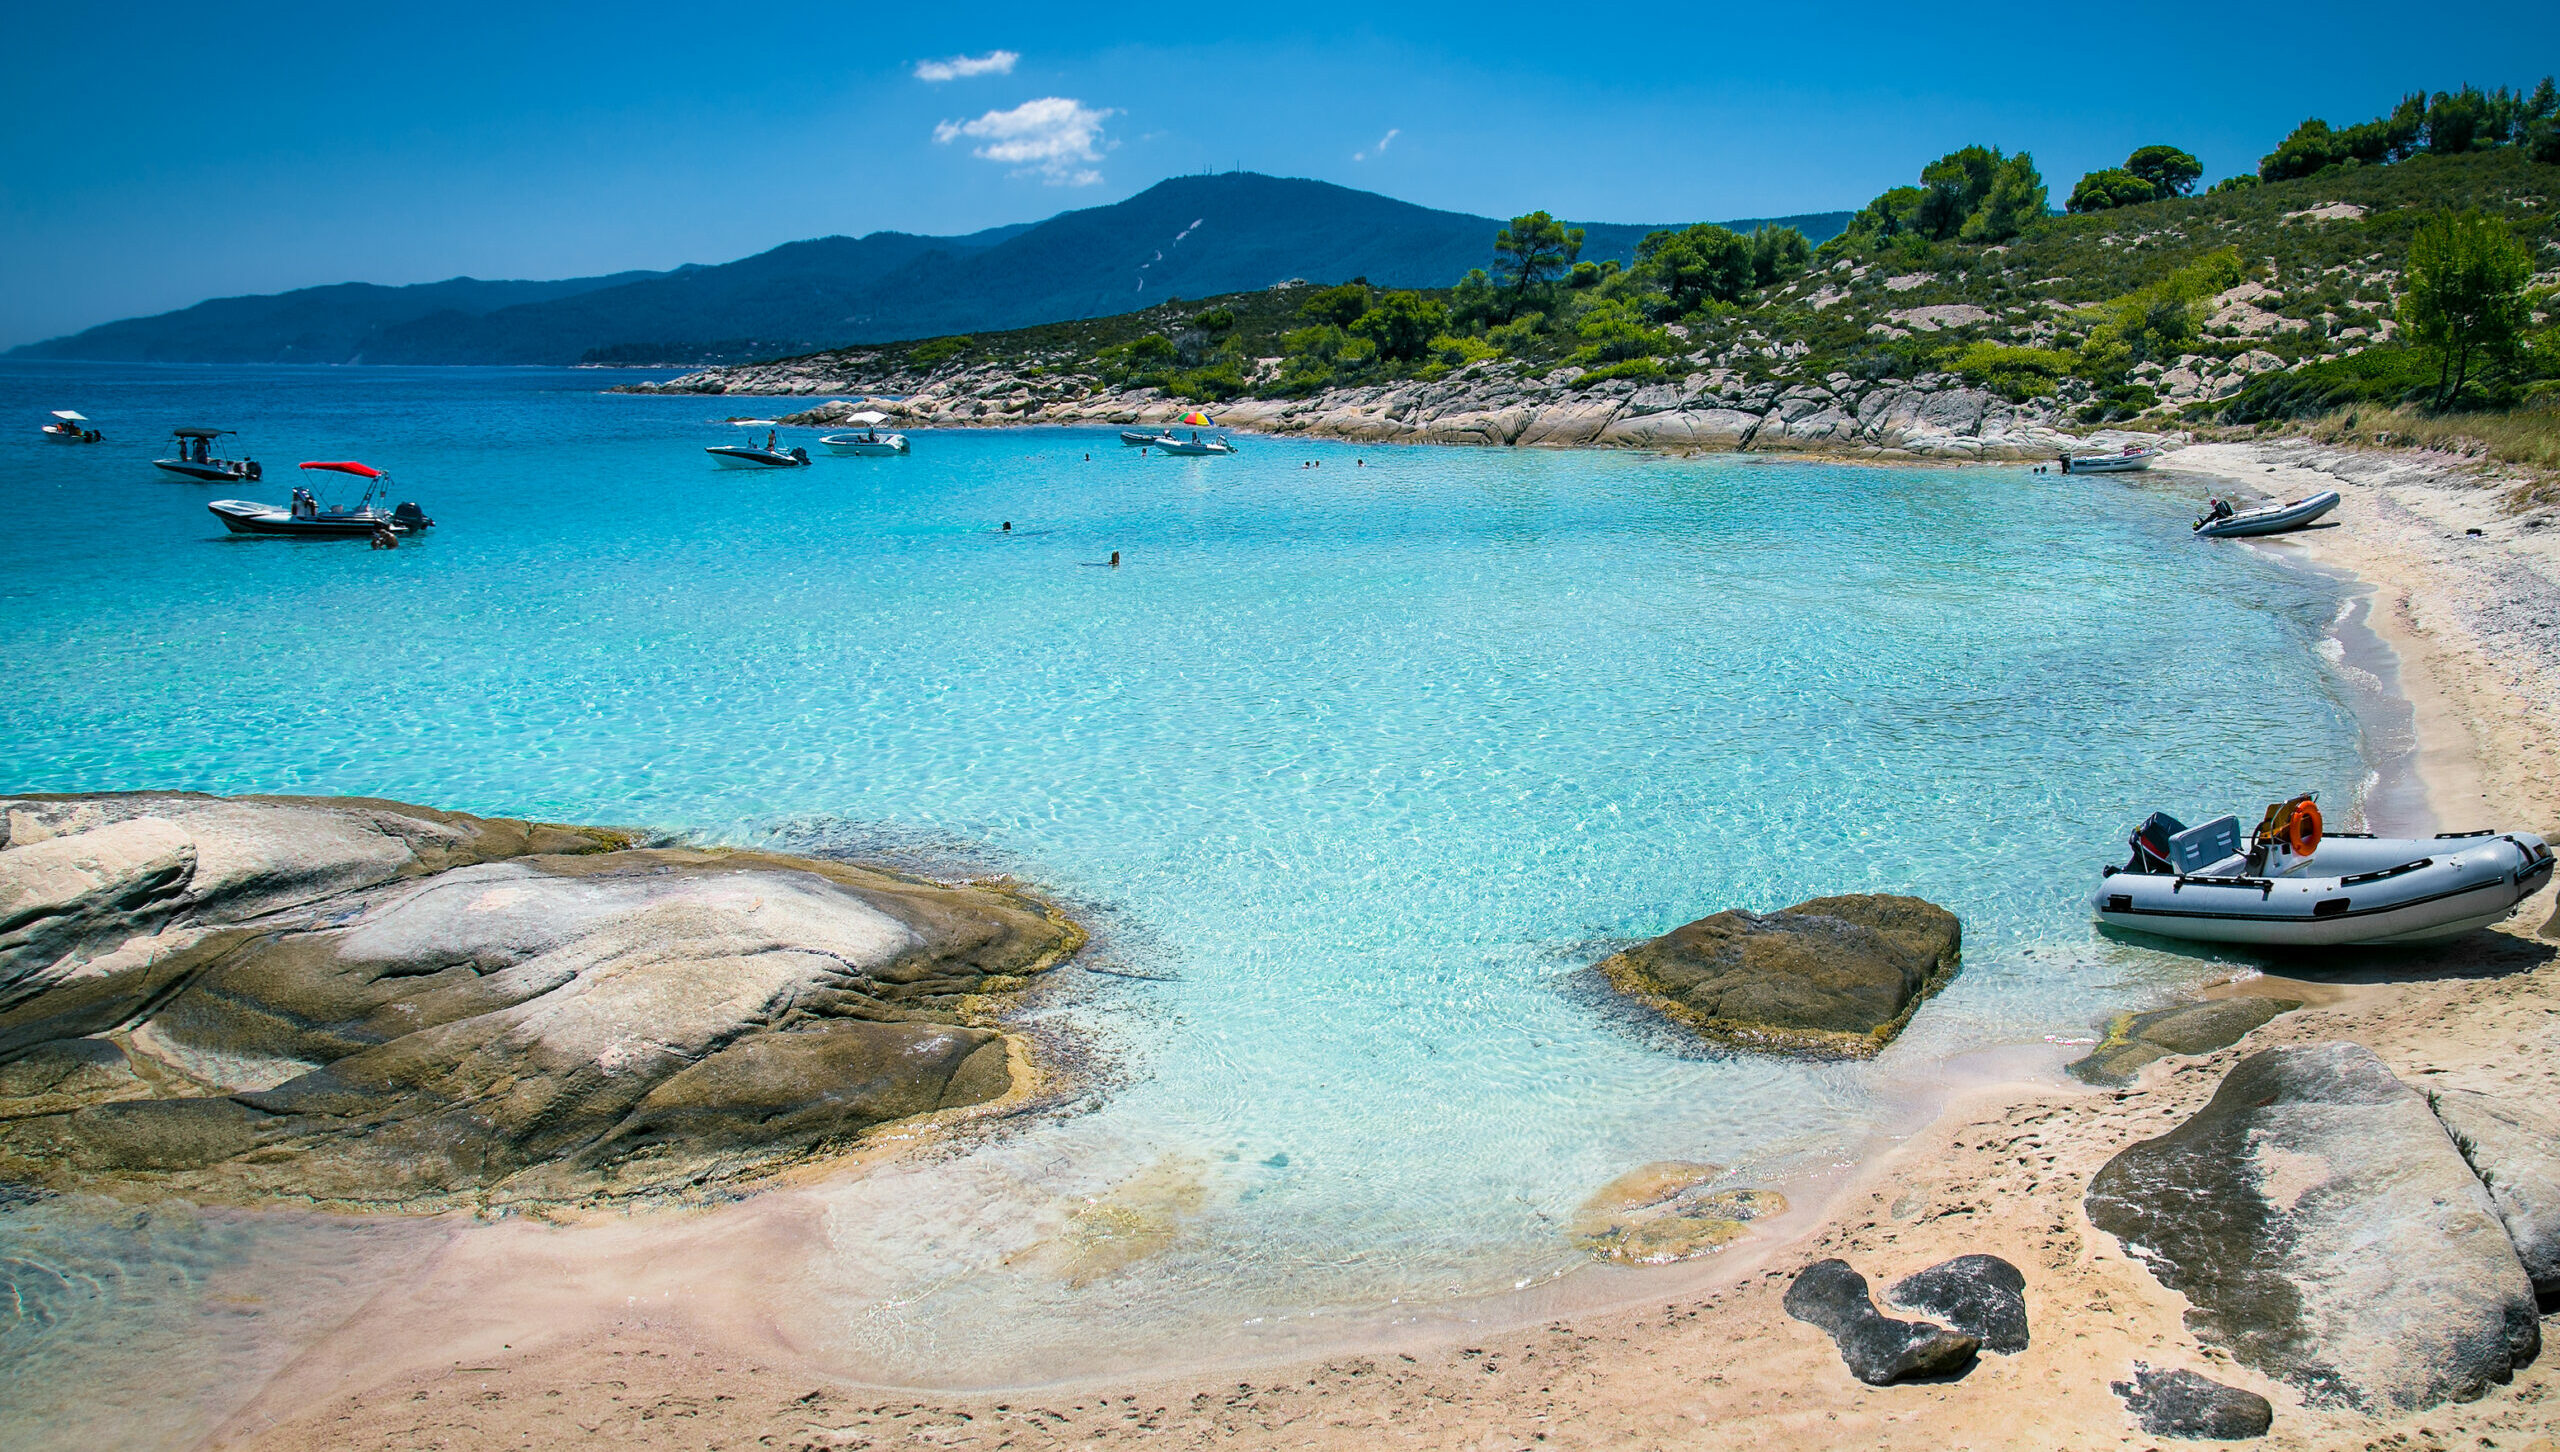 Halkidiki: Diaporos, the Greek island that it has warm waters all the year-round